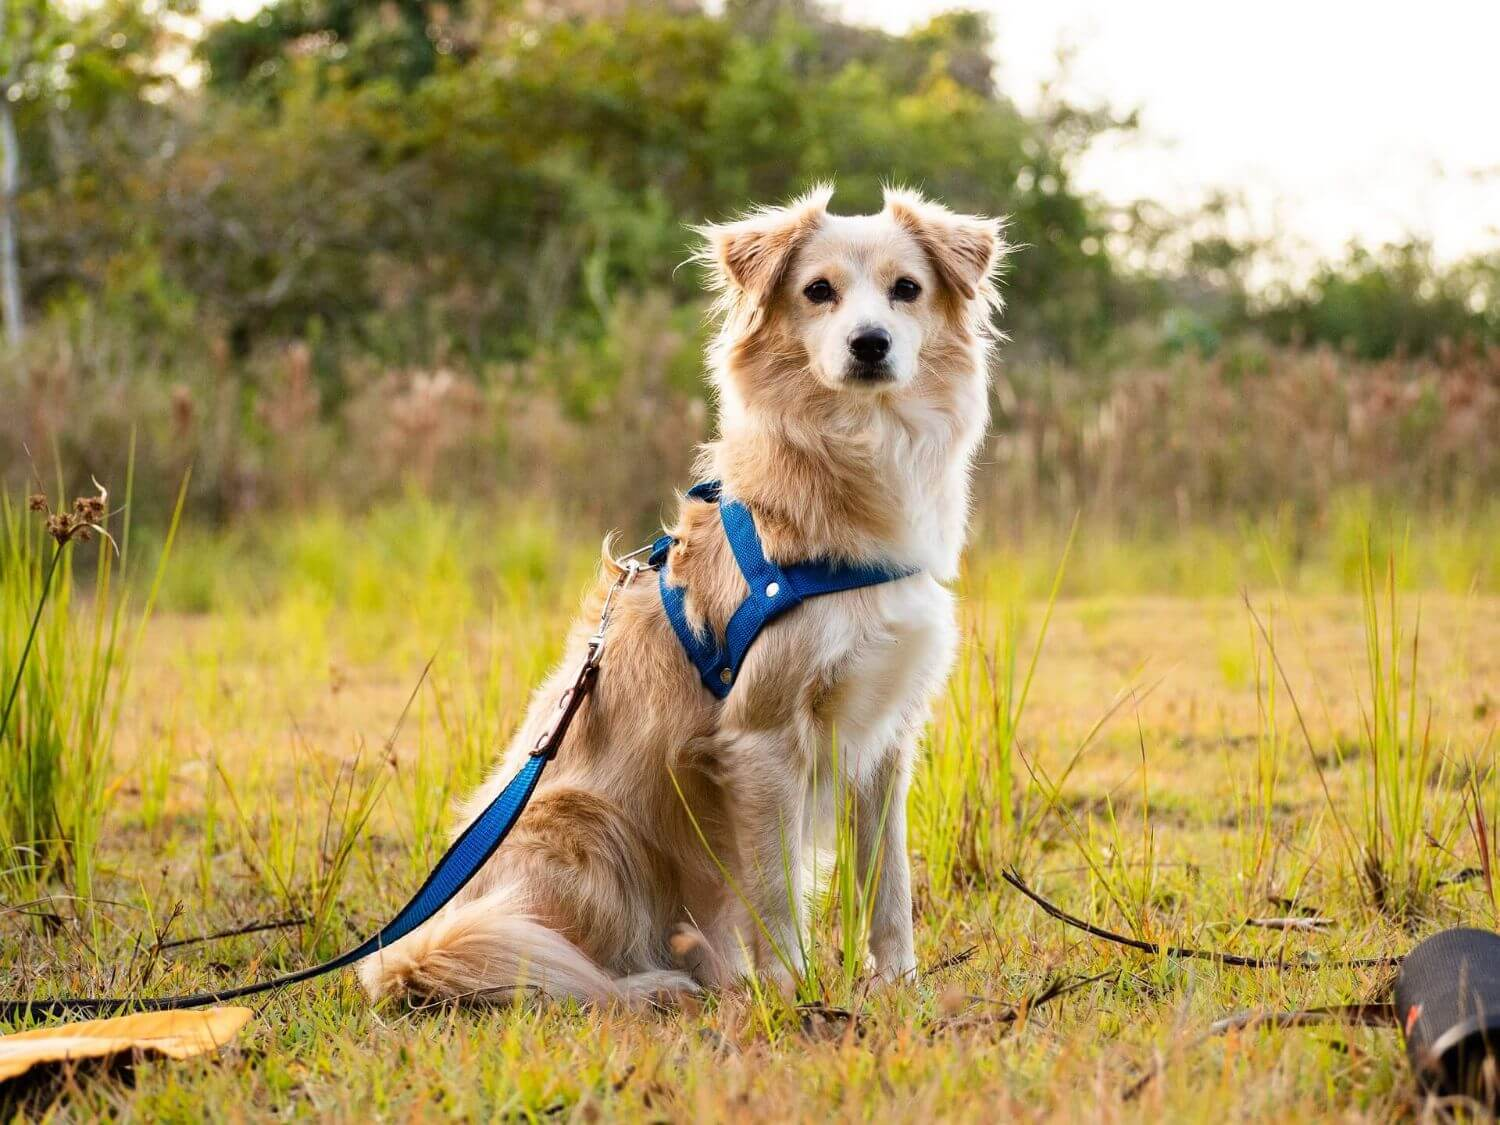 Collar or harness: what should I choose for my dog?